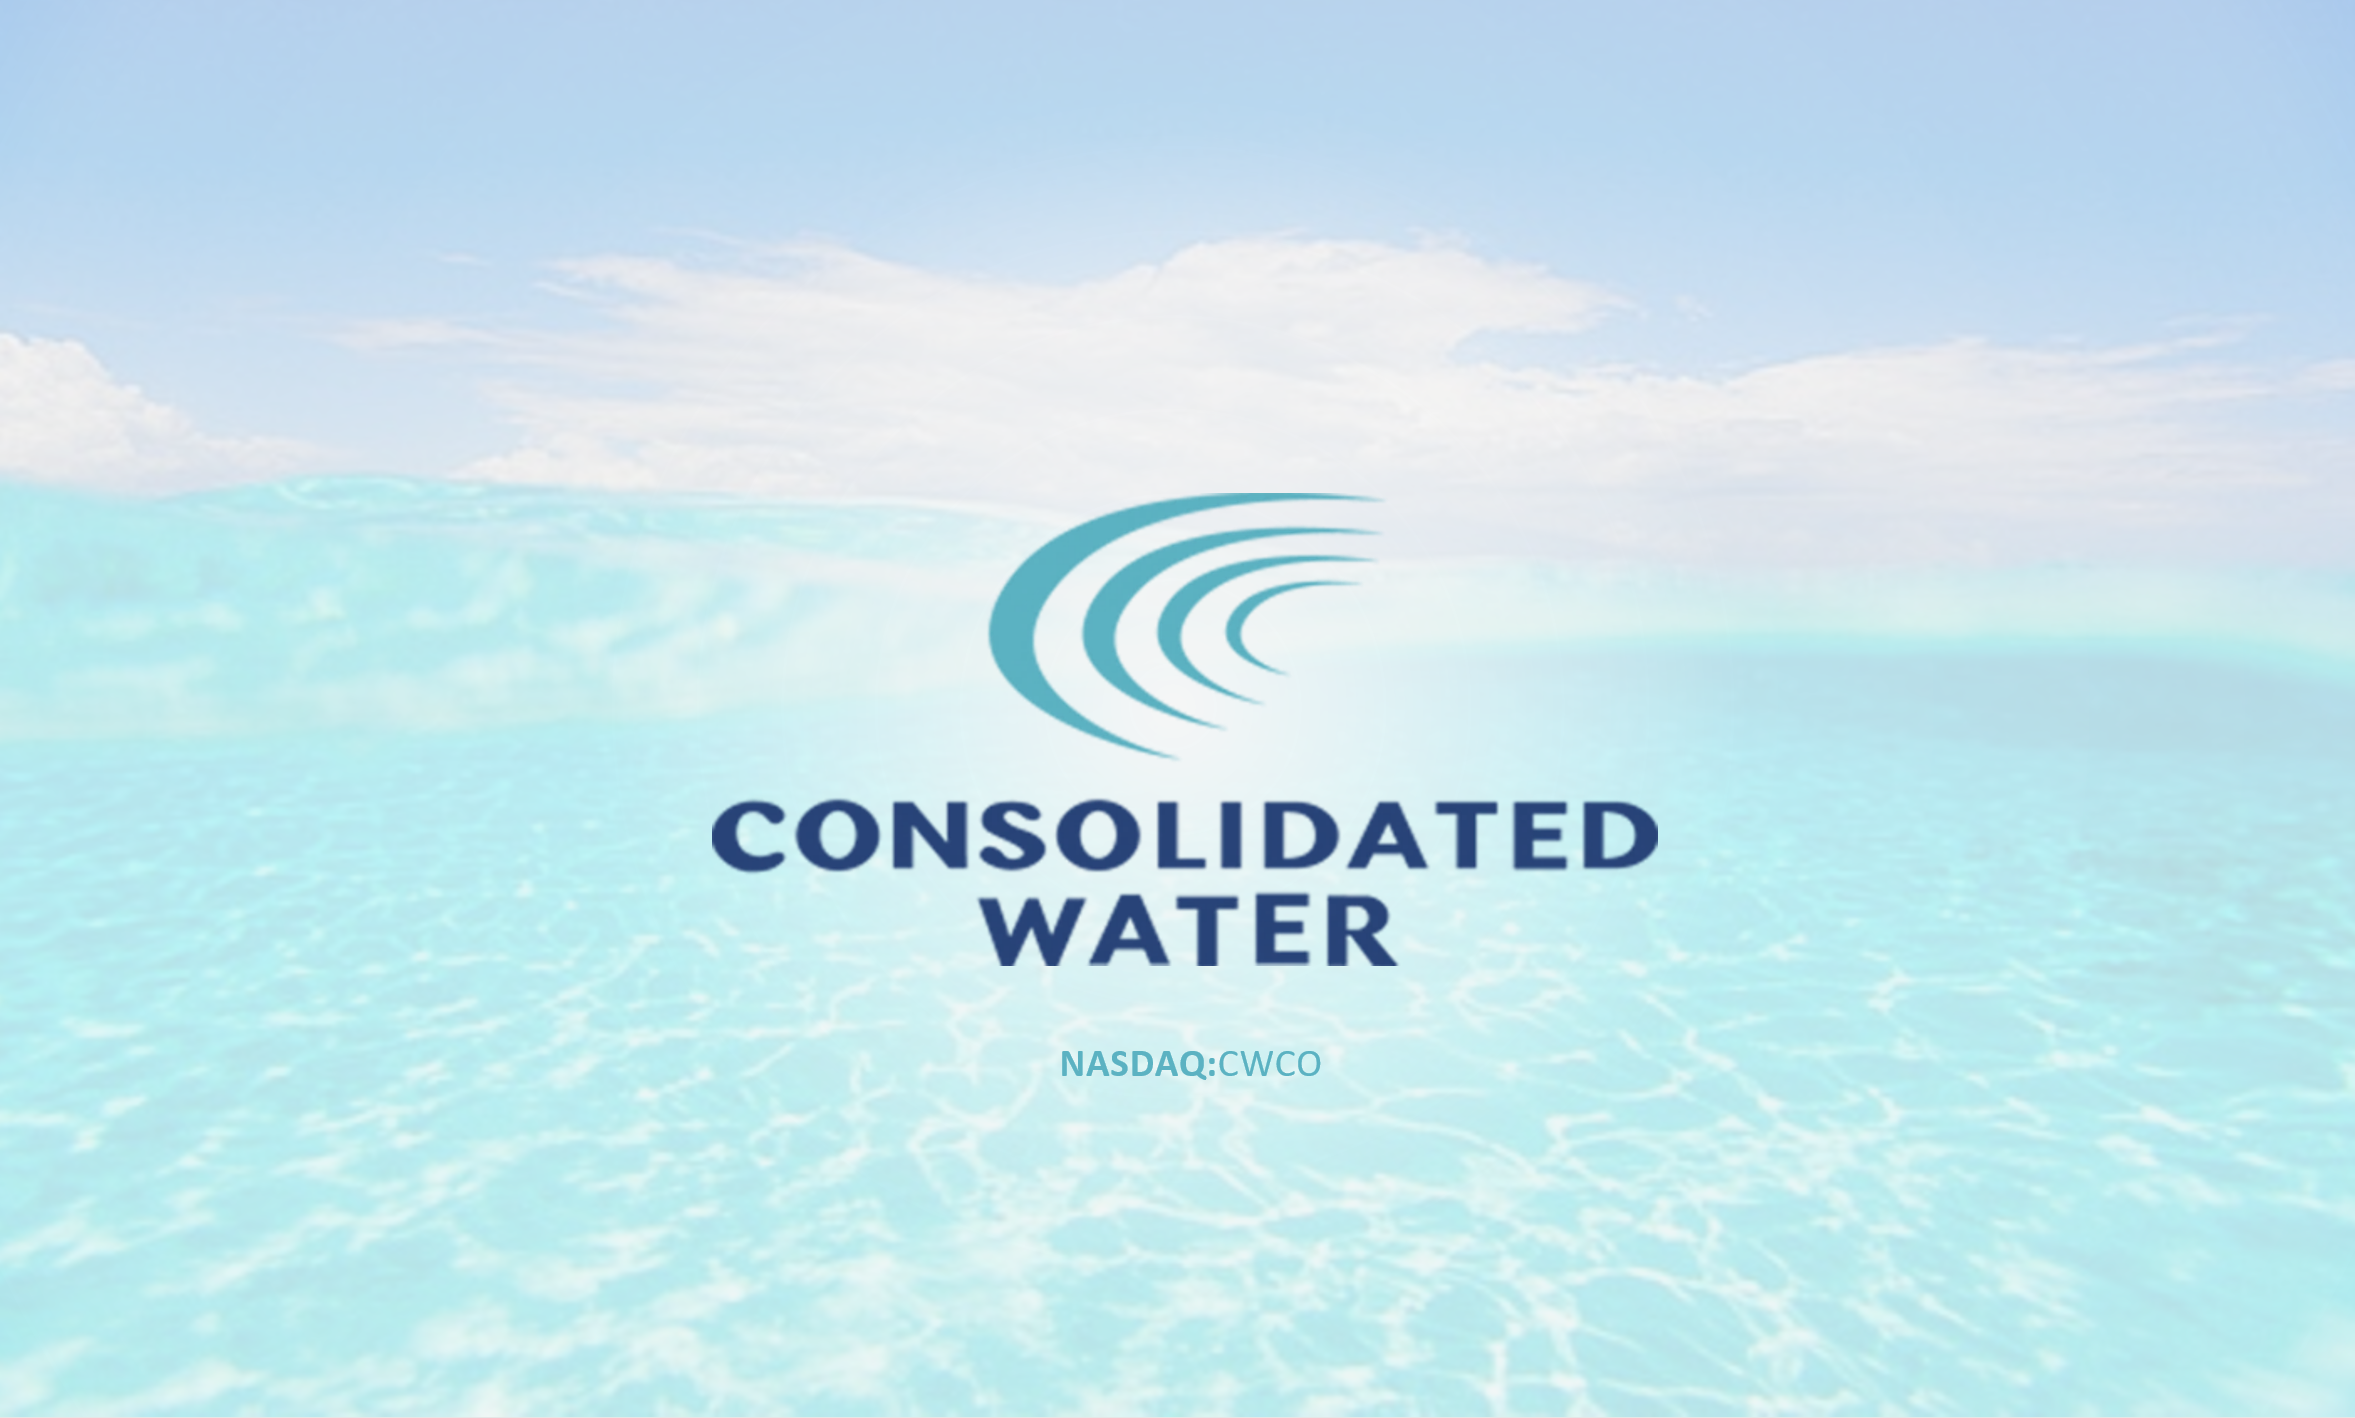 Consolidated Water Co. Ltd. (Nasdaq:CWCO)